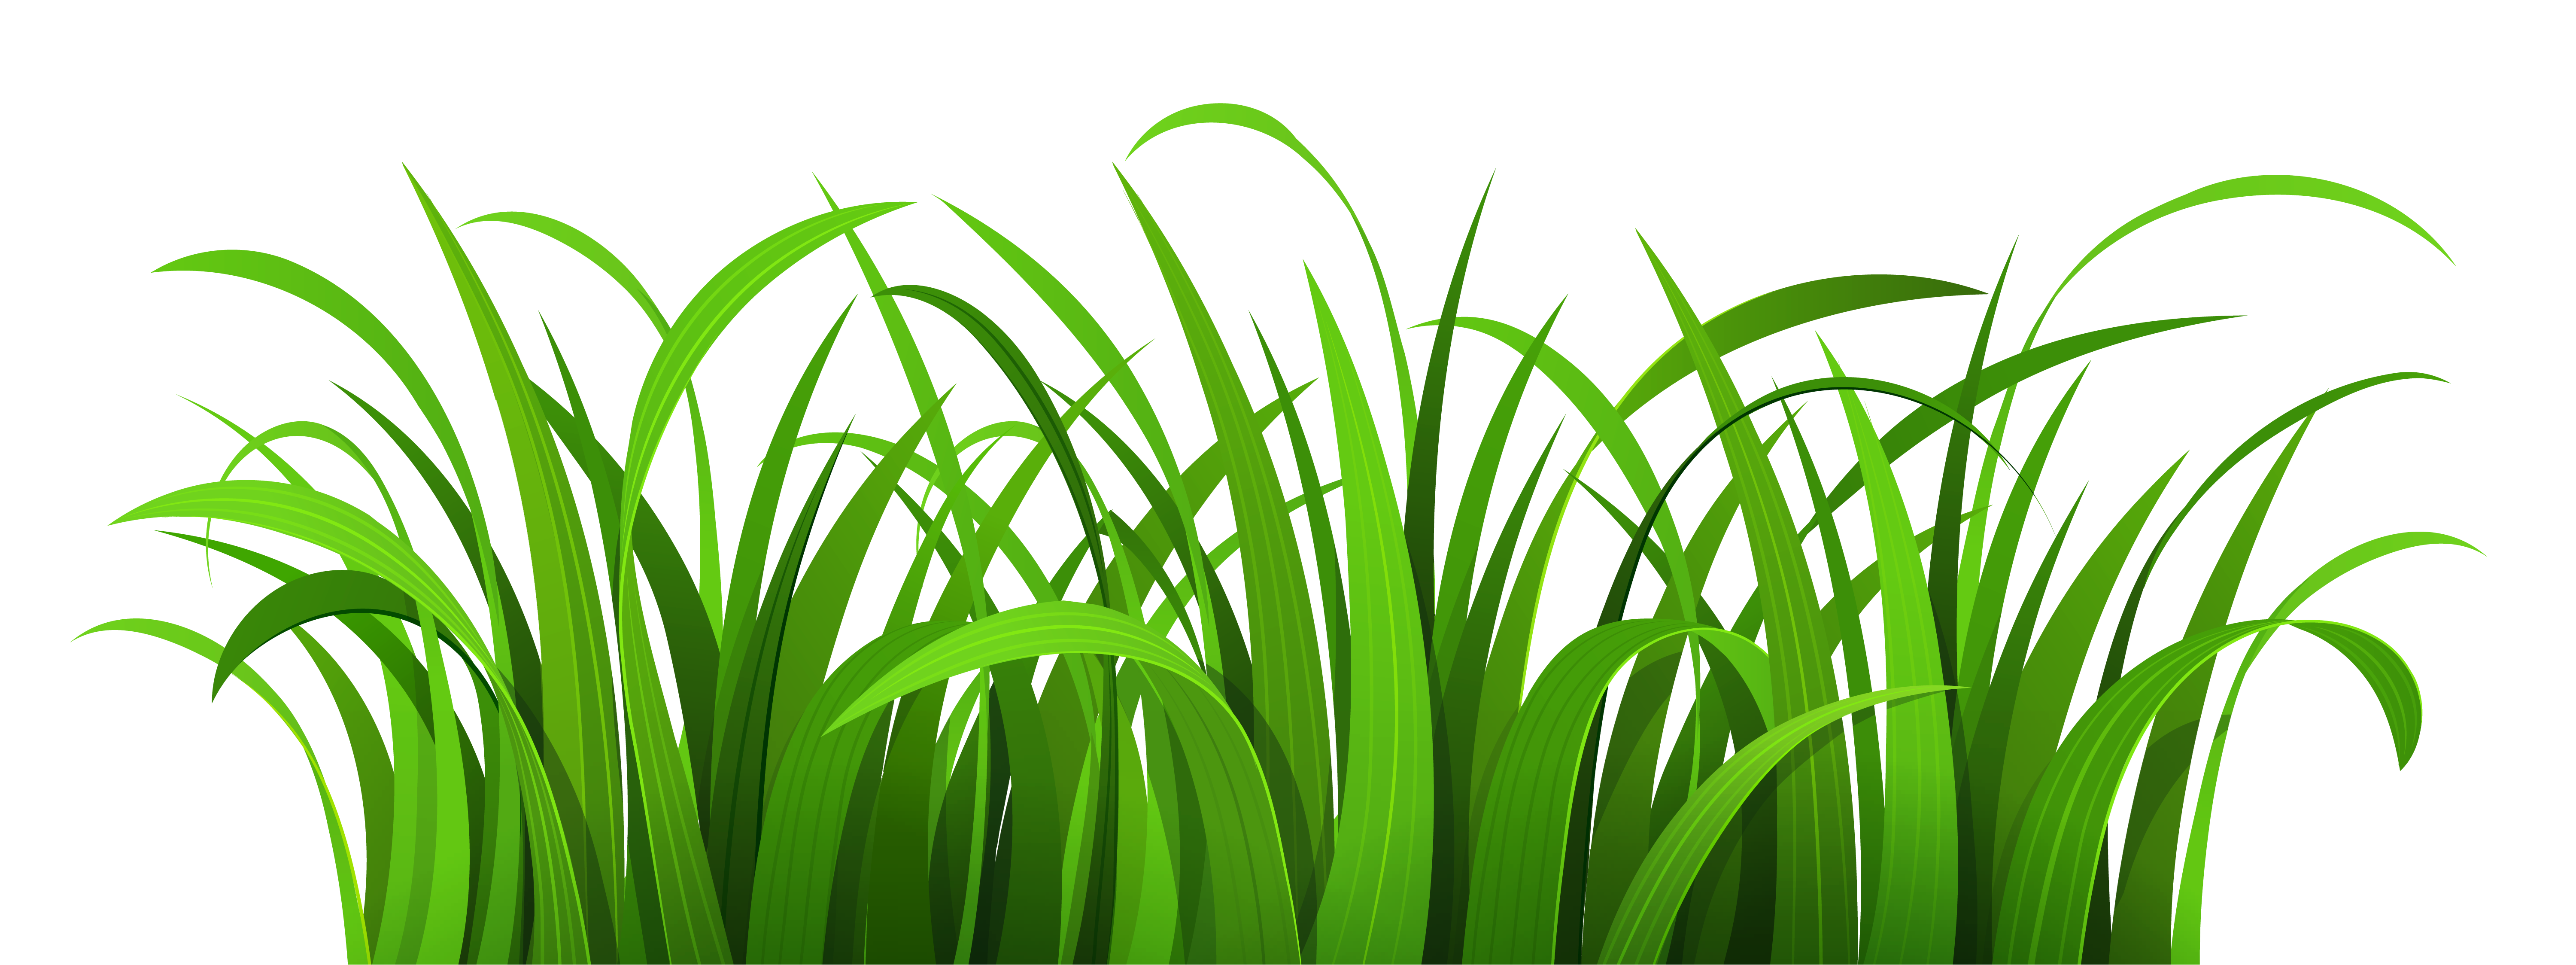 free png Grass Clipart images transparent